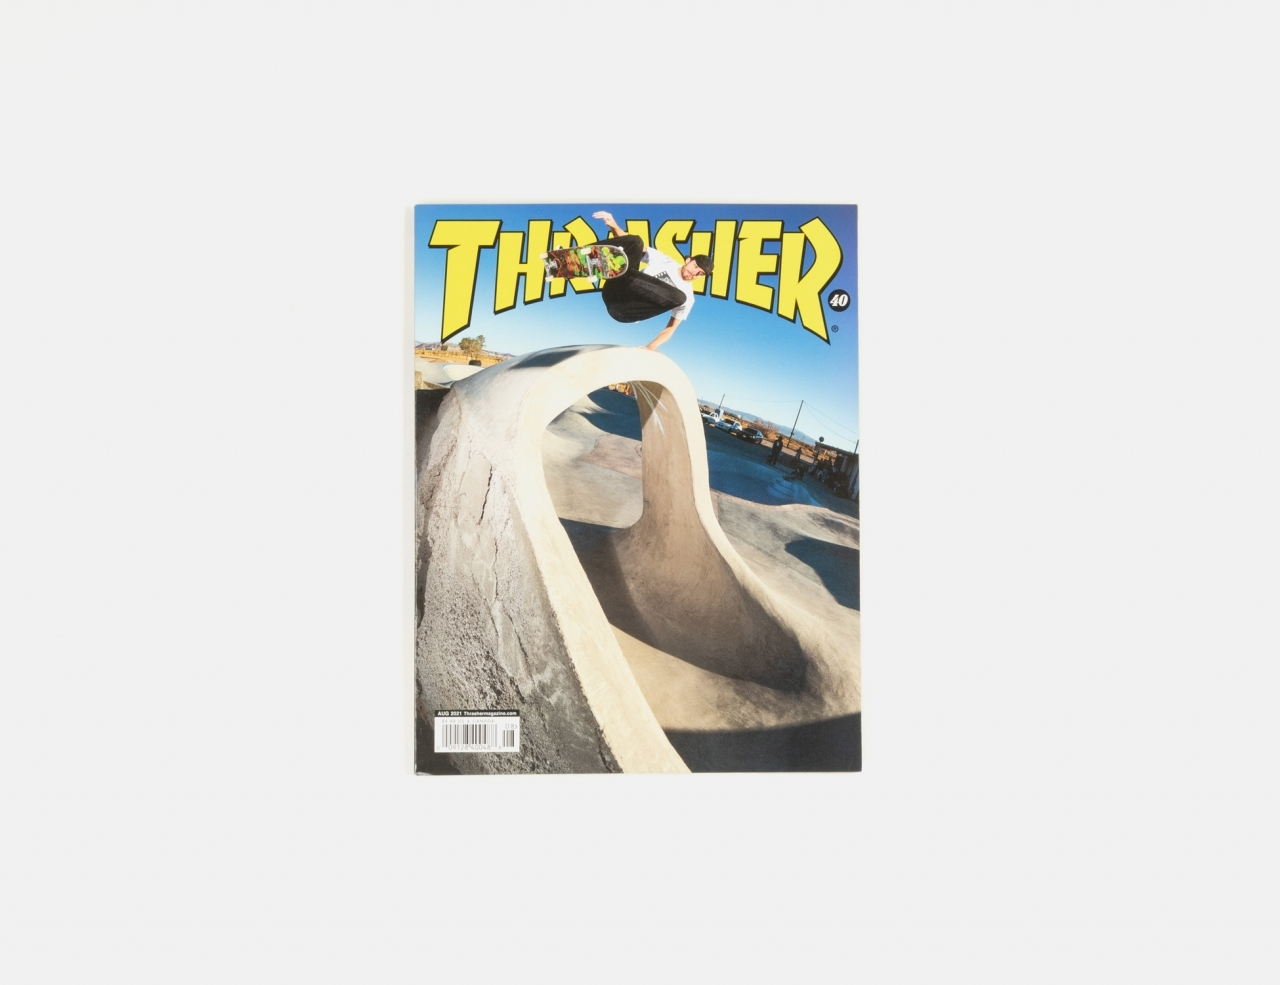 Thrasher Issues 2021 - August